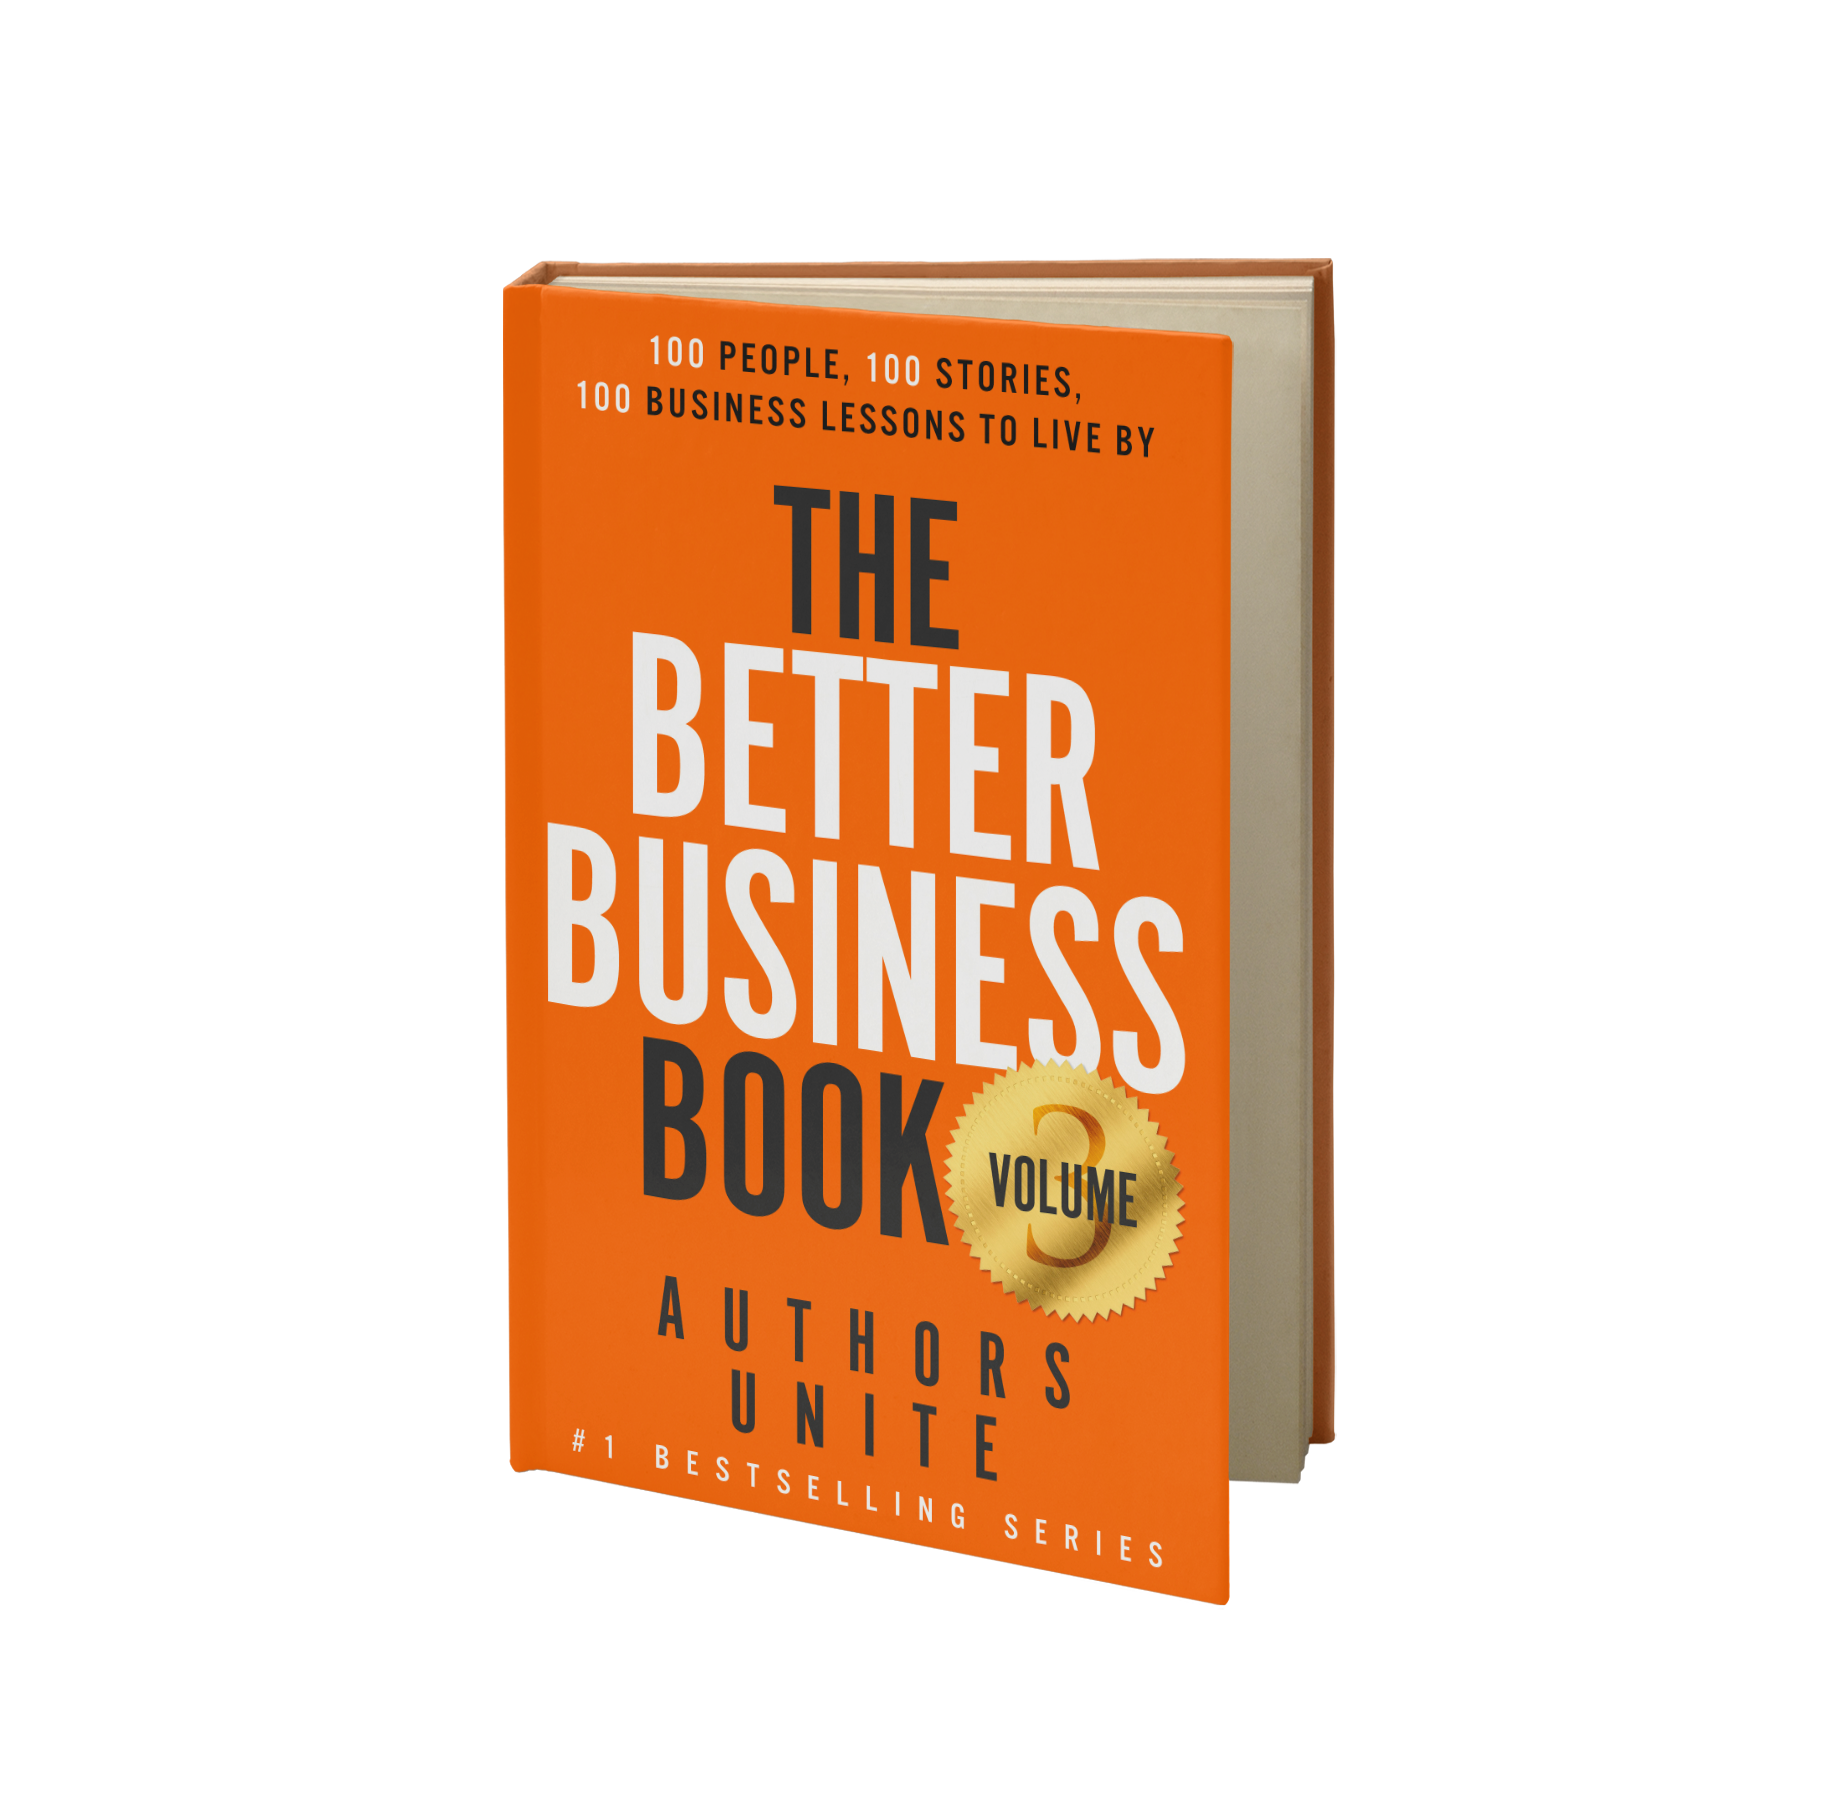 The Better Business Book V3 My Contribution Fit And All By